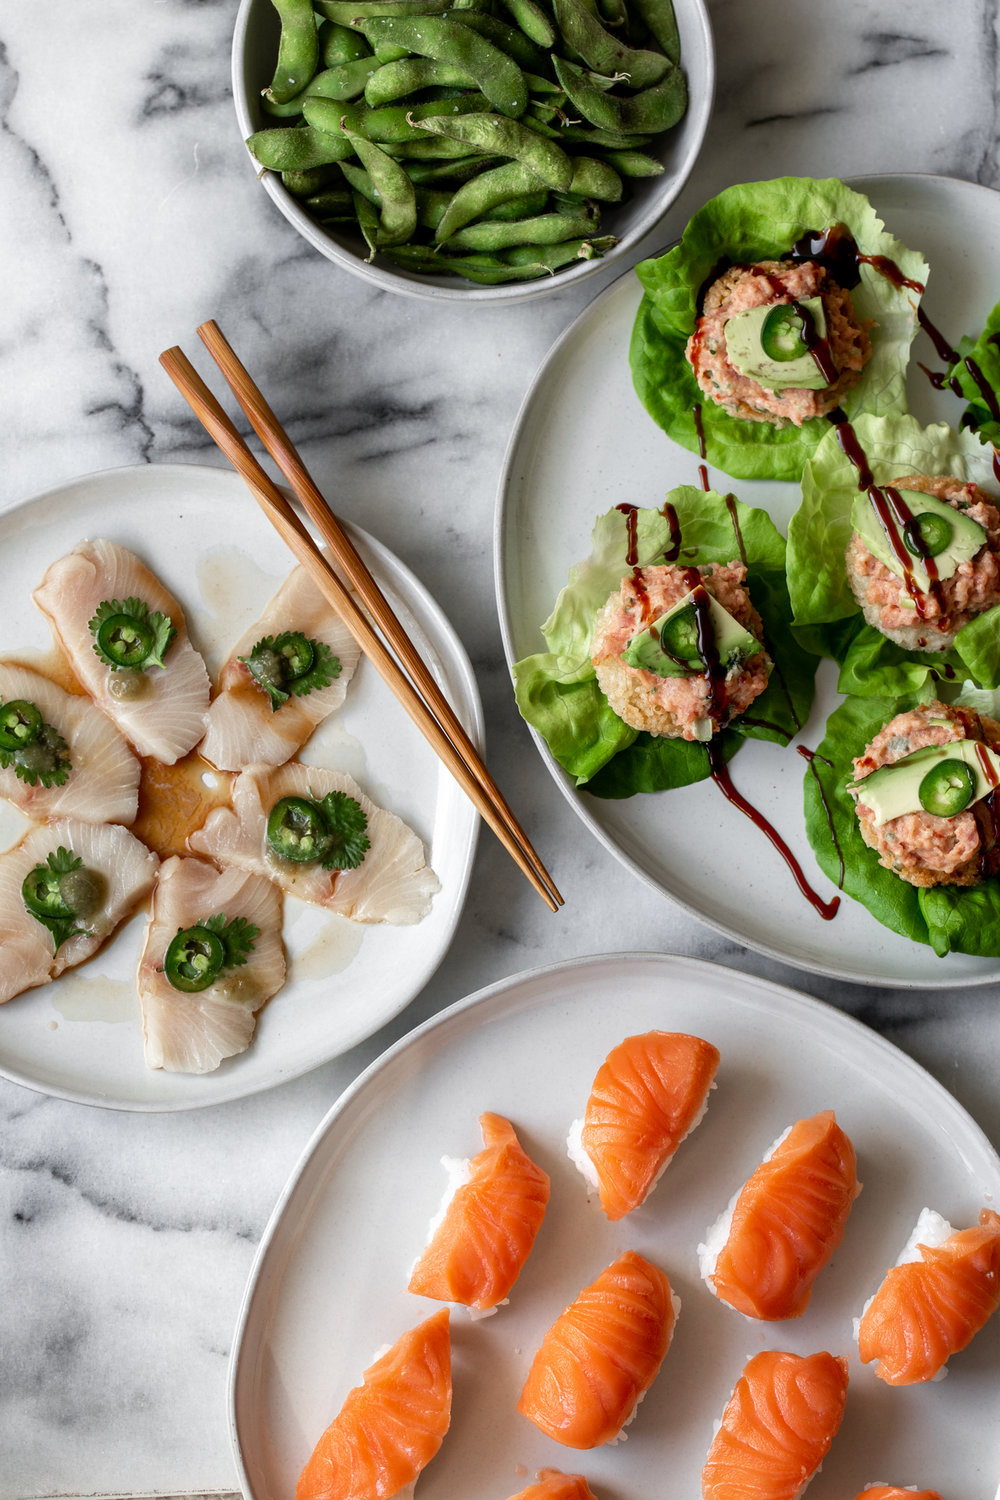 Valentine's Day 2019 Nobu at Homefrom Cooking with Cocktail Rings spread